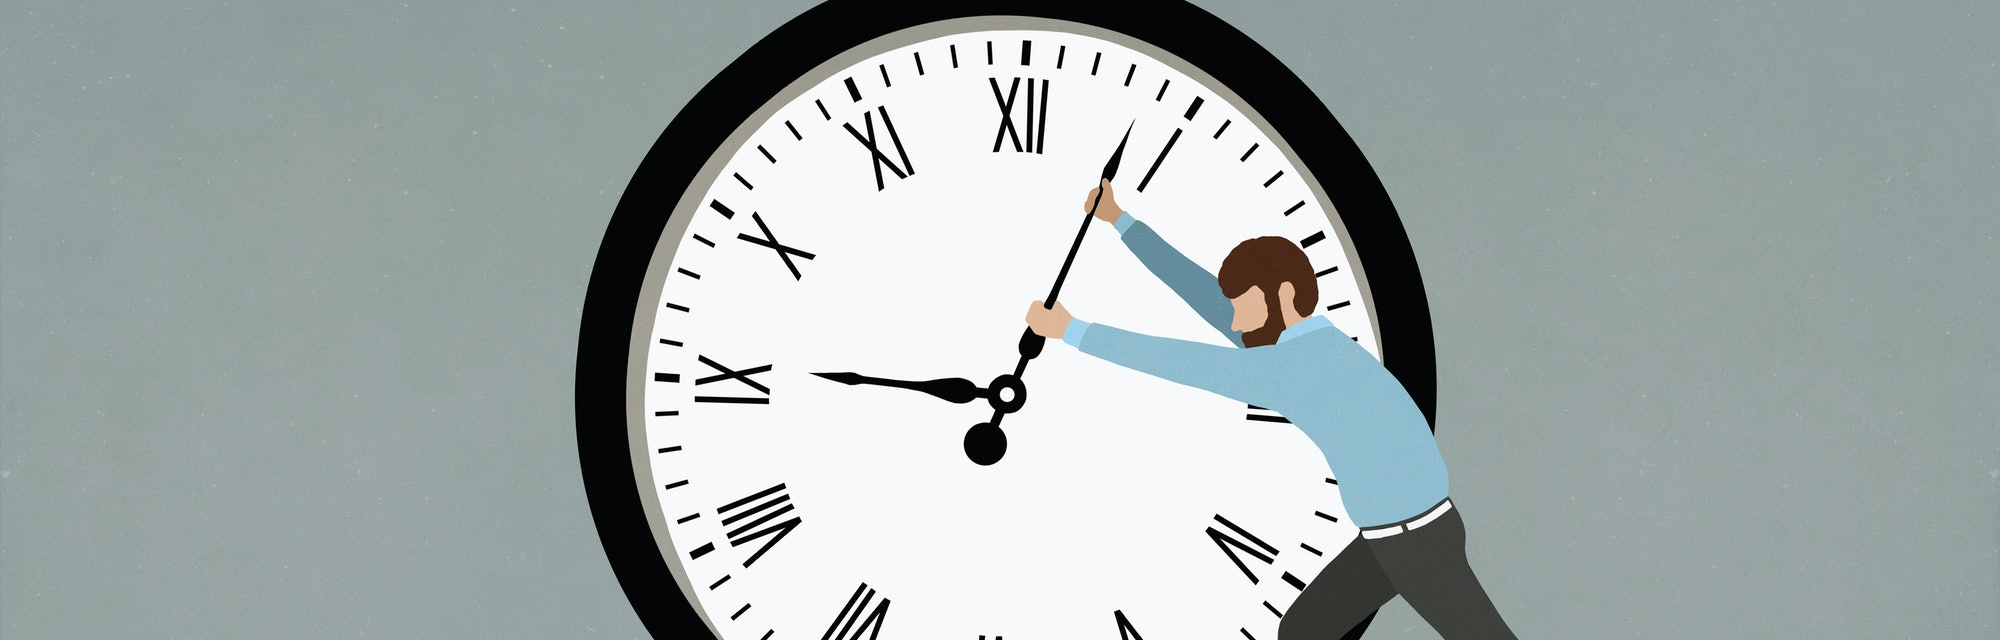 Man pushing hands of large clock.